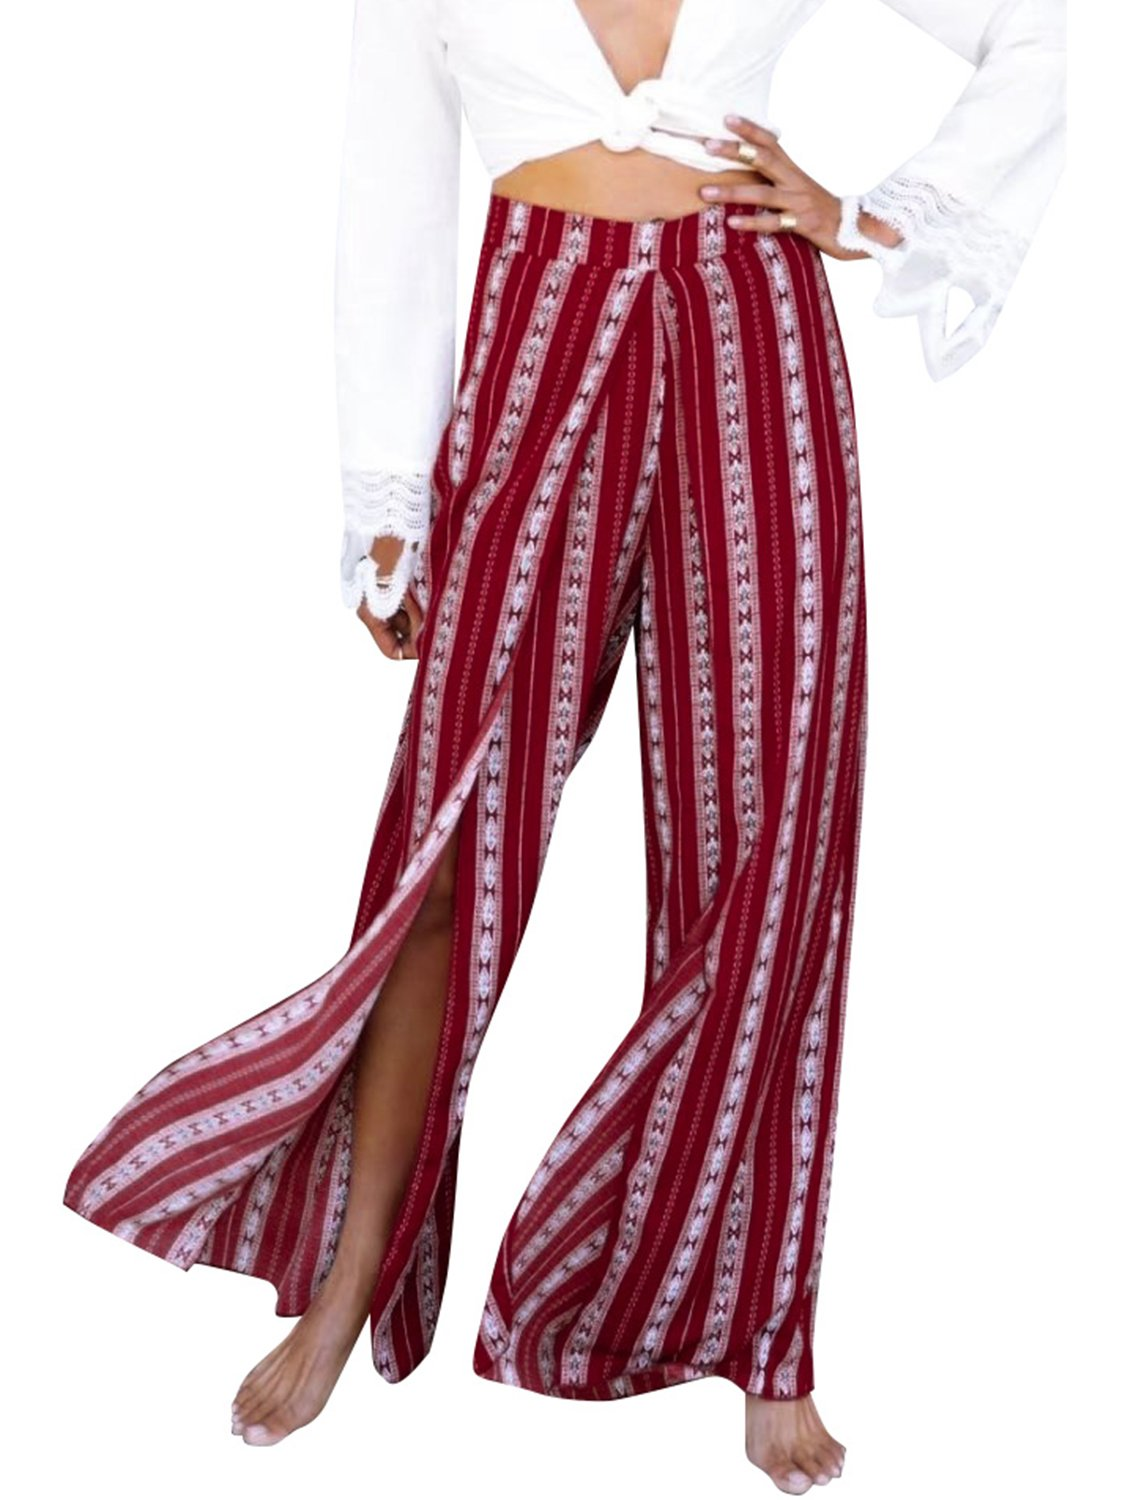 Simplee Women's Summer High Waisted Split Loose Wide Leg Pants Print Casual Palazzo Pants Red US 8